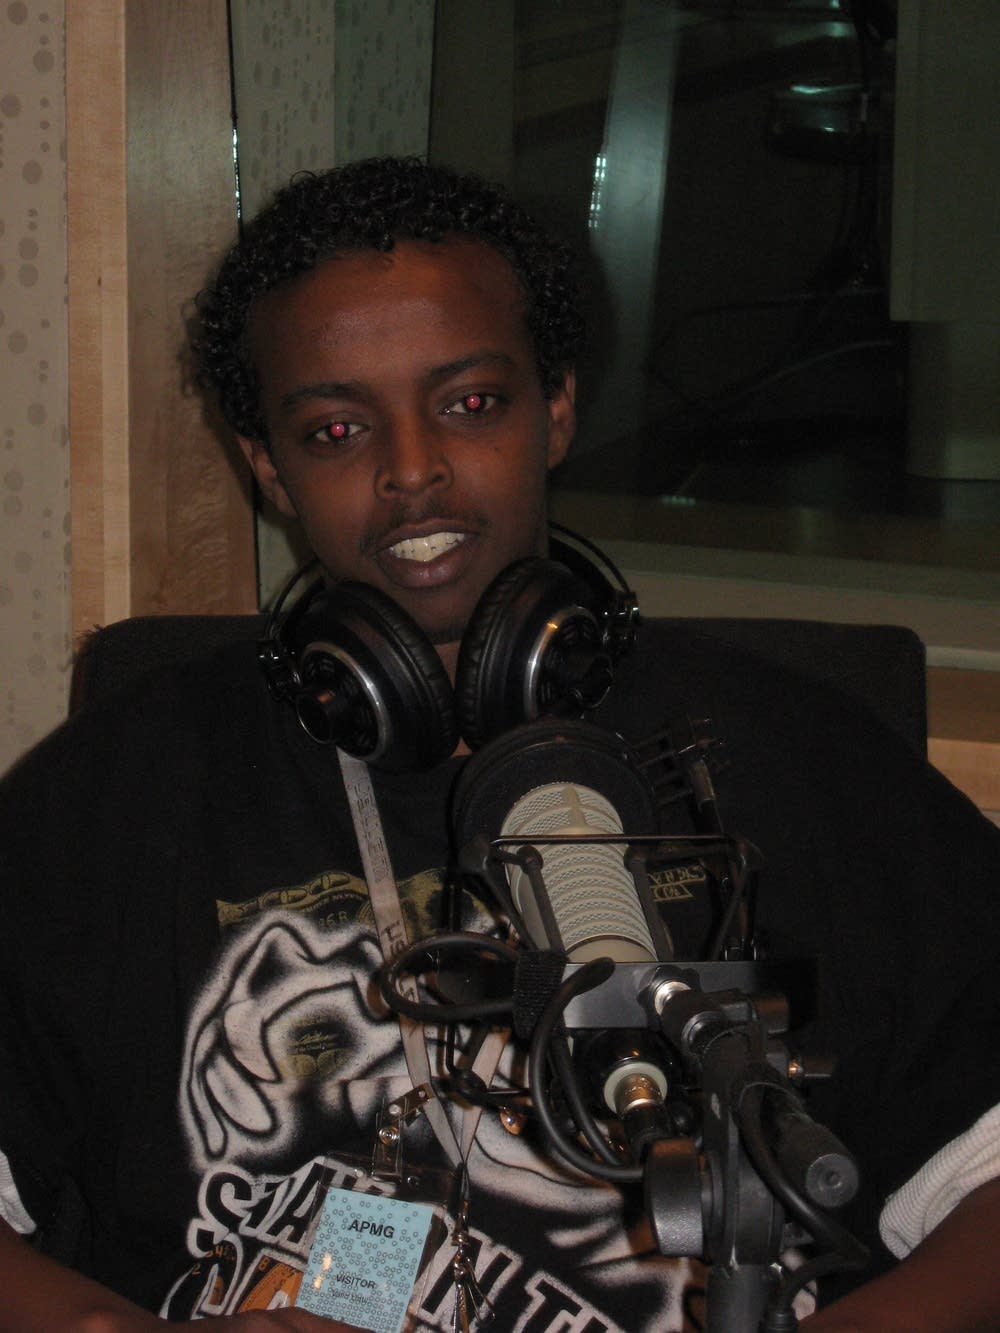 Liban Hassan, an 18-year-old Somali teen